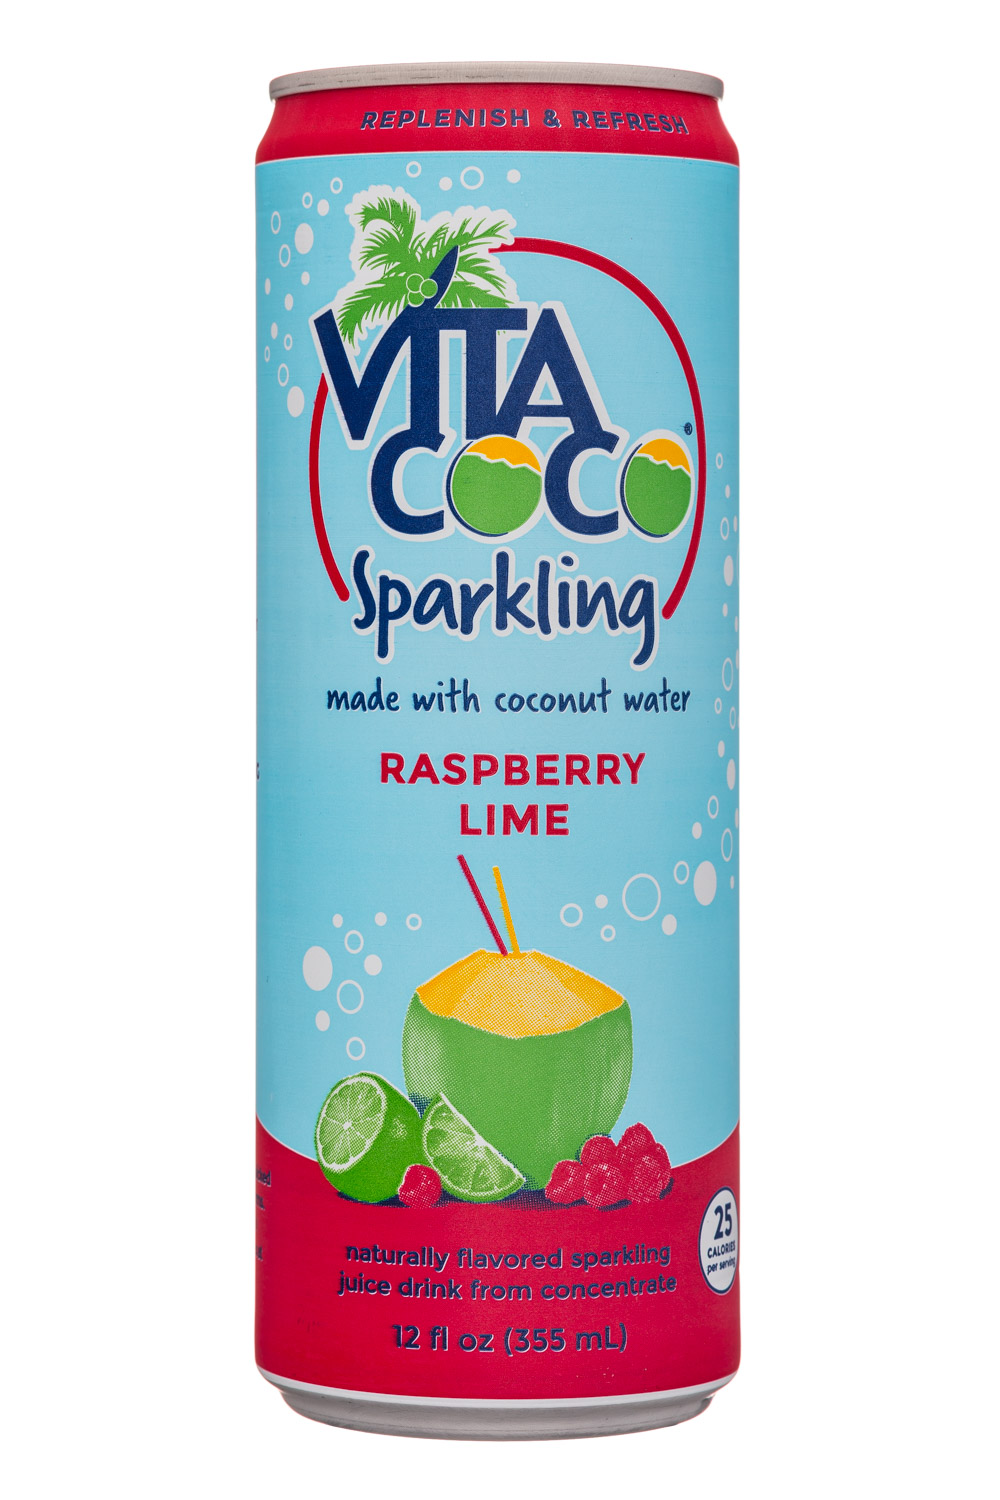 Sparkling Raspberry Lime